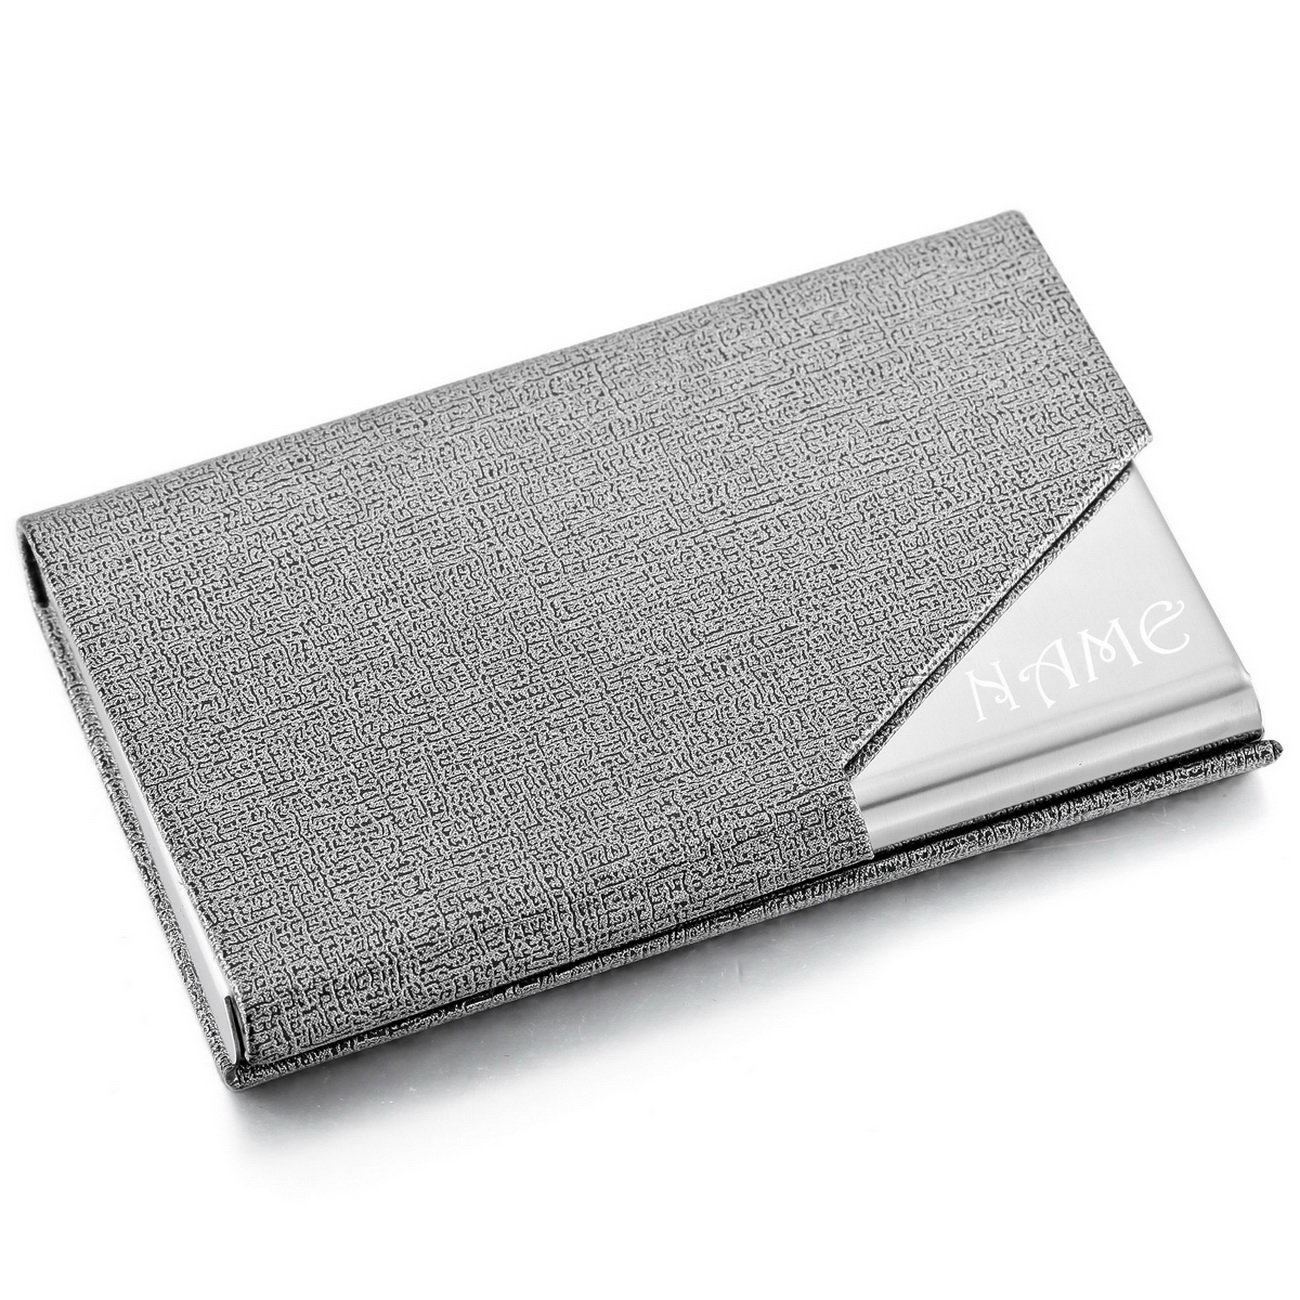 Customized Engraving MeMeDIY Silver Tone Stainless Steel Leather Card Case Business Card Holder